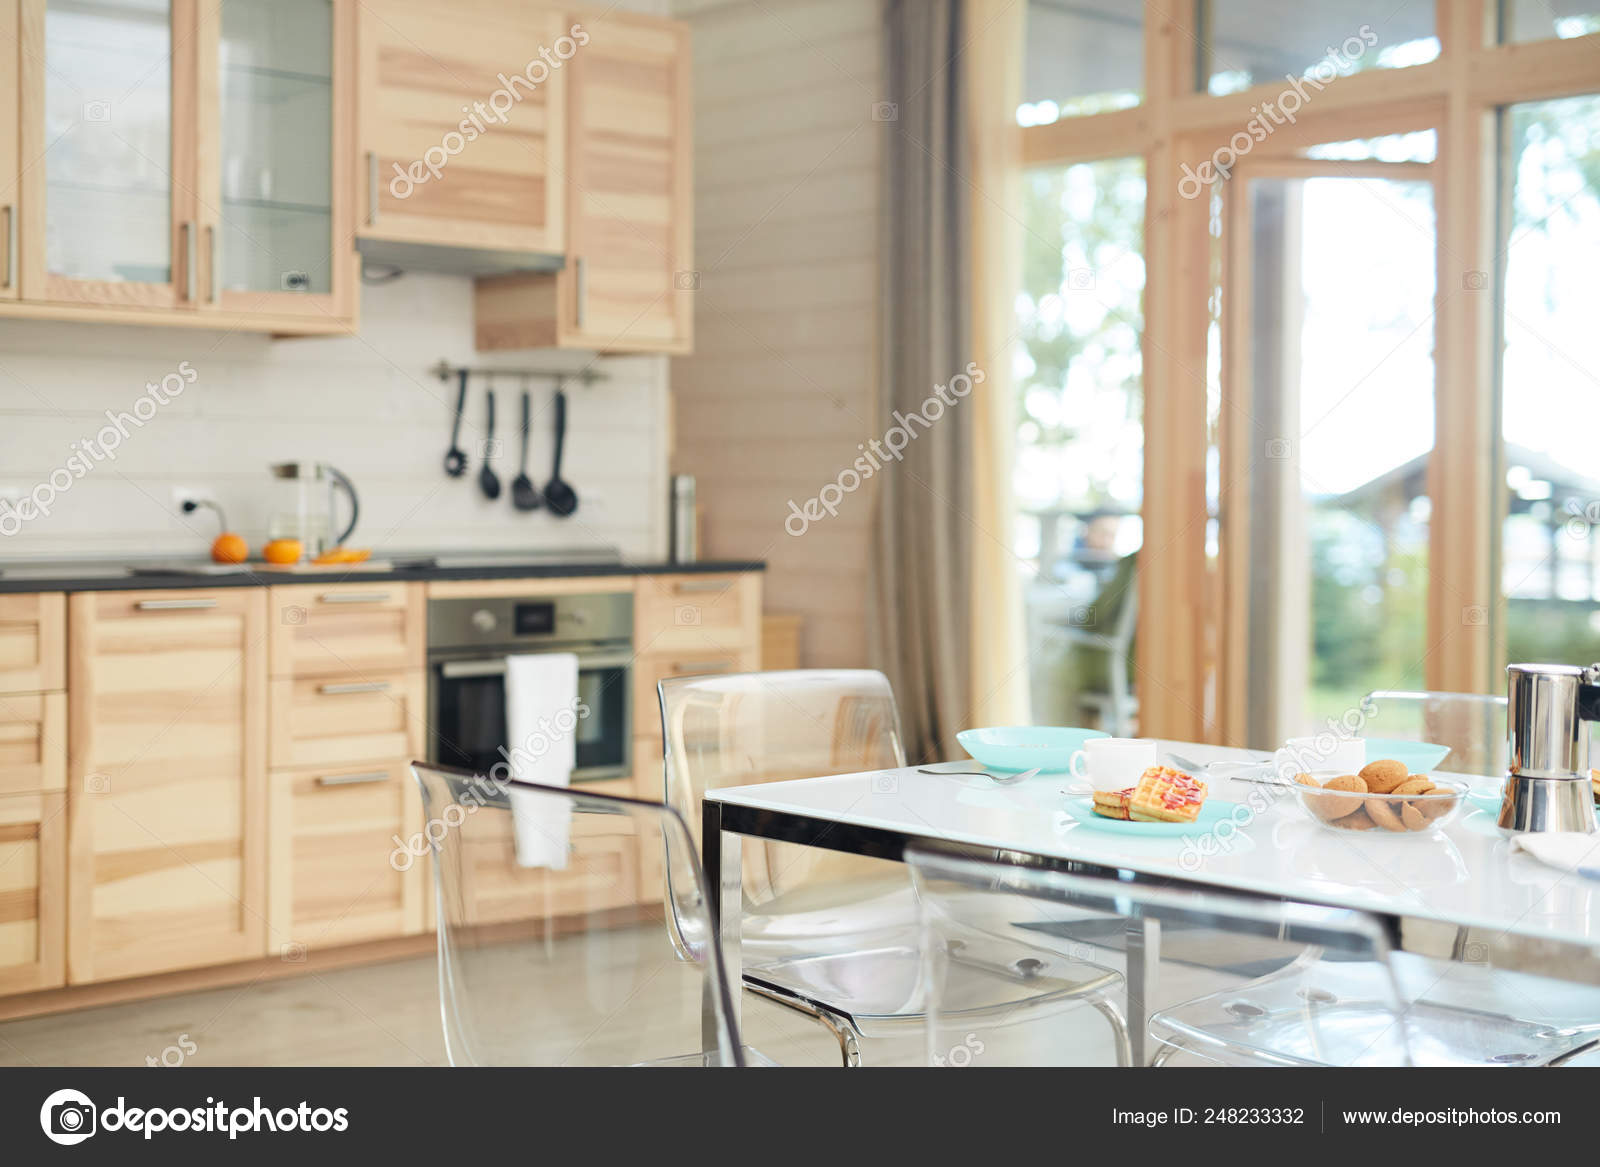 Empty Domestic Kitchen Modern Table Setting Breakfast Transparent Chairs Wooden Stock Photo C Pressmaster 248233332